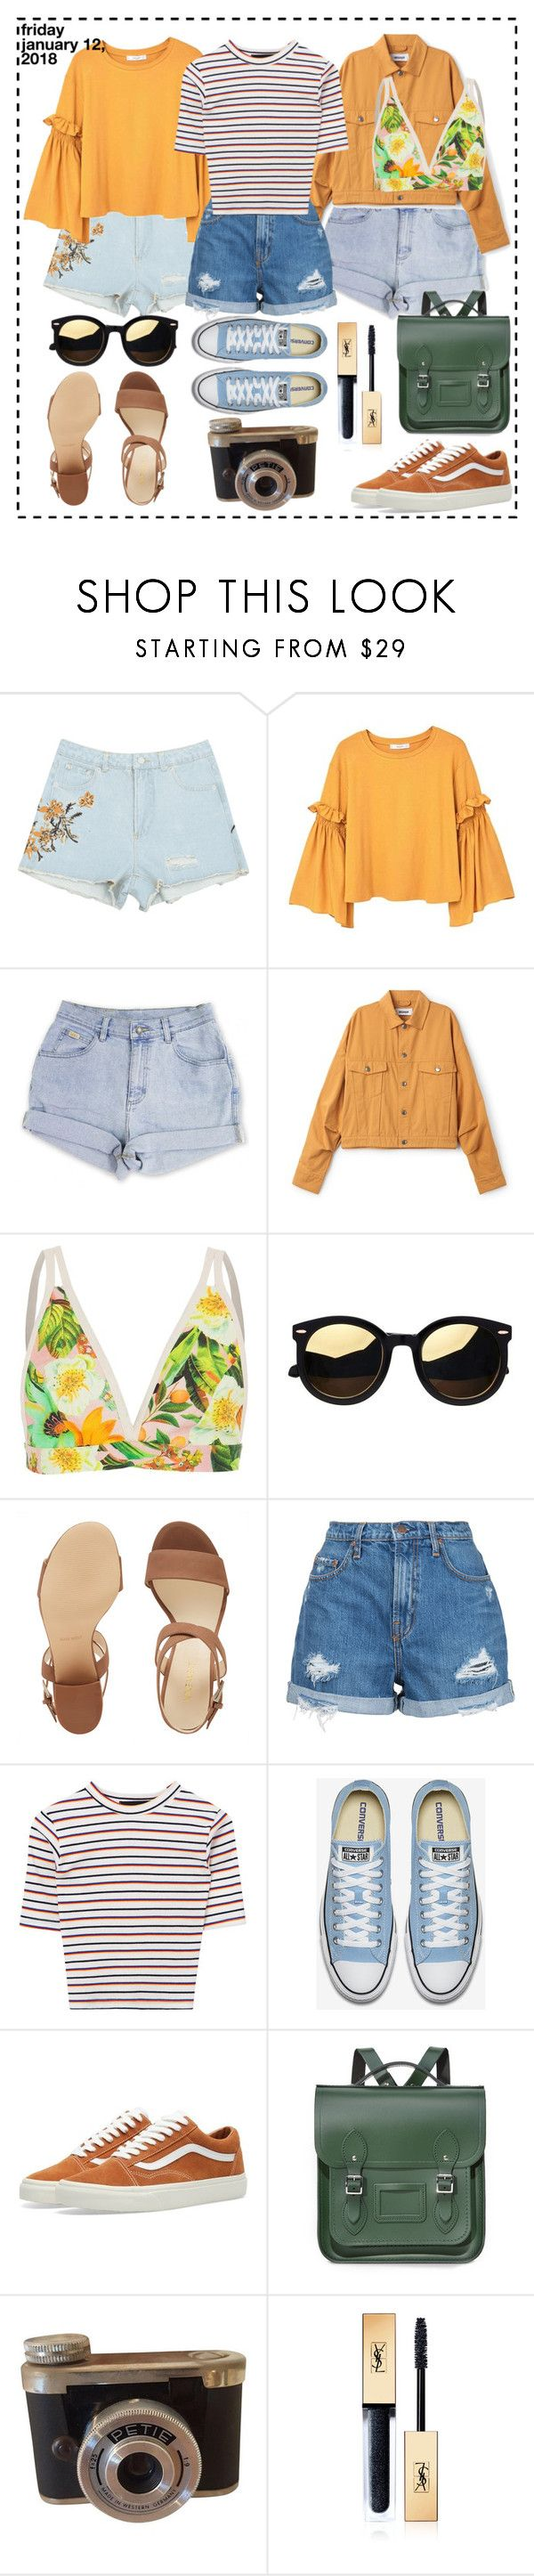 """""""friday. january 12, 2018"""" by andreabrooklynn ❤ liked on Polyvore featuring MANGO, Nine West, Nobody Denim, Vans, The Cambridge Satchel Company and Yves Saint Laurent"""